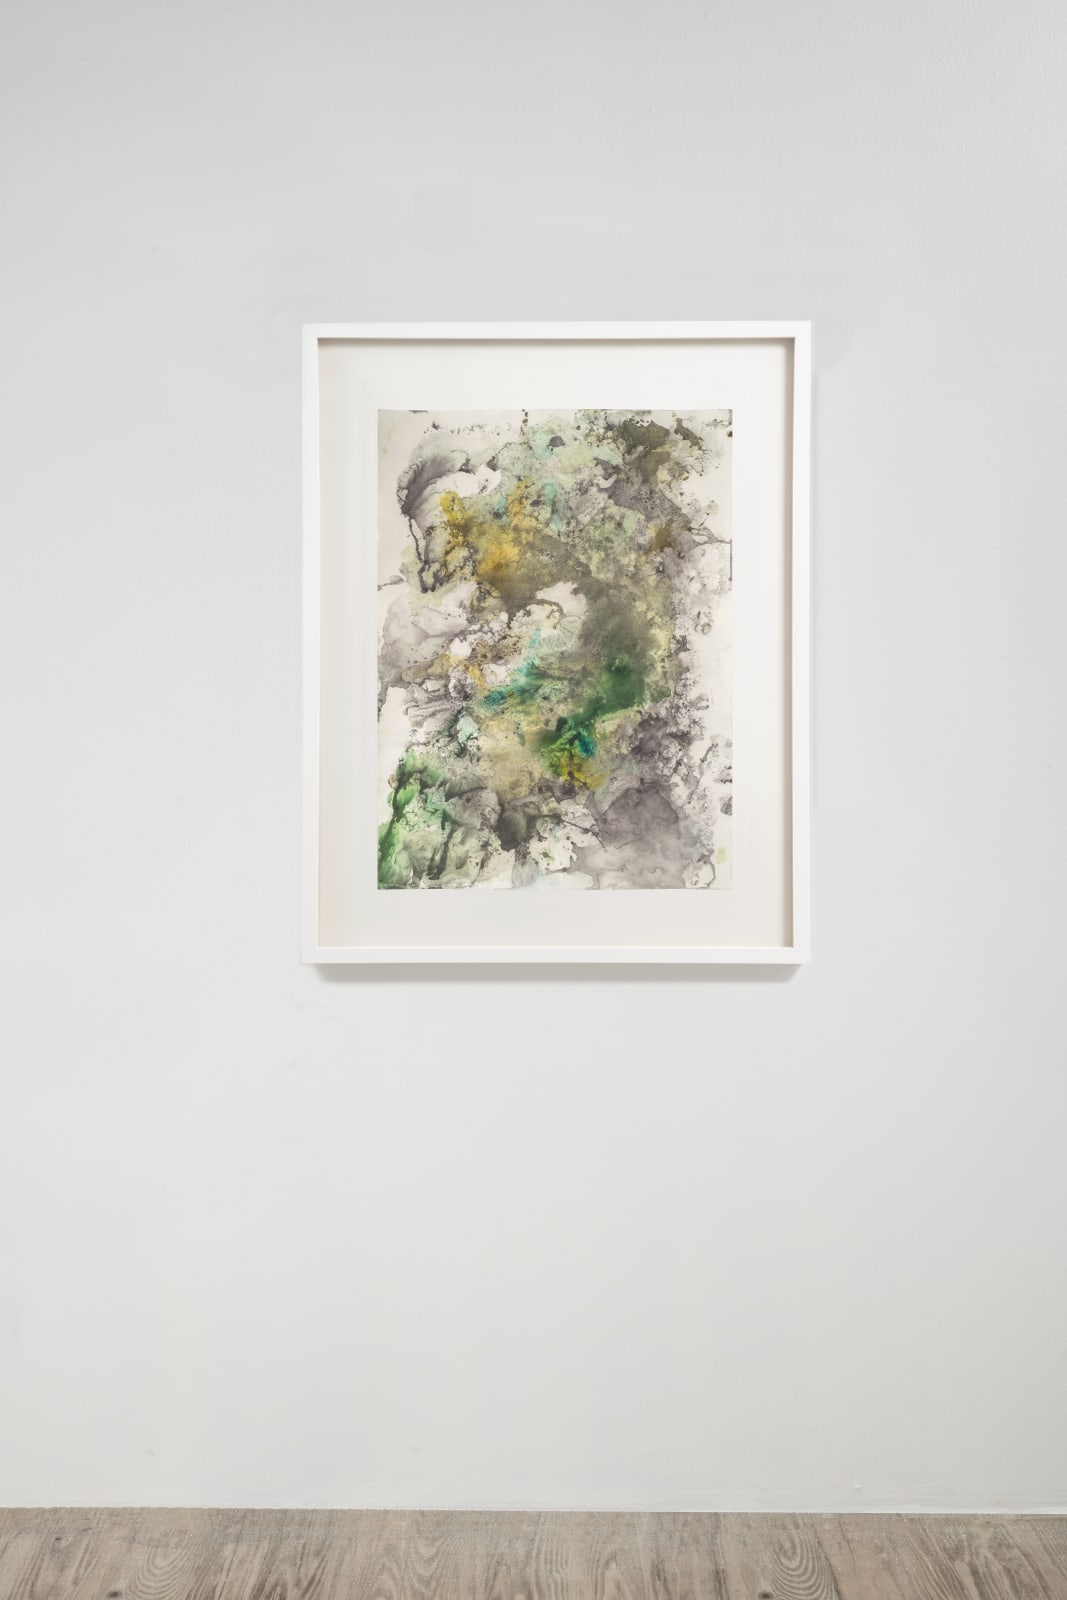 Michele Colburn Green Wave, 2020 Gunpowder and watercolors on Arches paper with deckled edges 76.2 x 55.9 cm, 30 x 22 in. (Frame not included) Photo: Lee Stalsworth